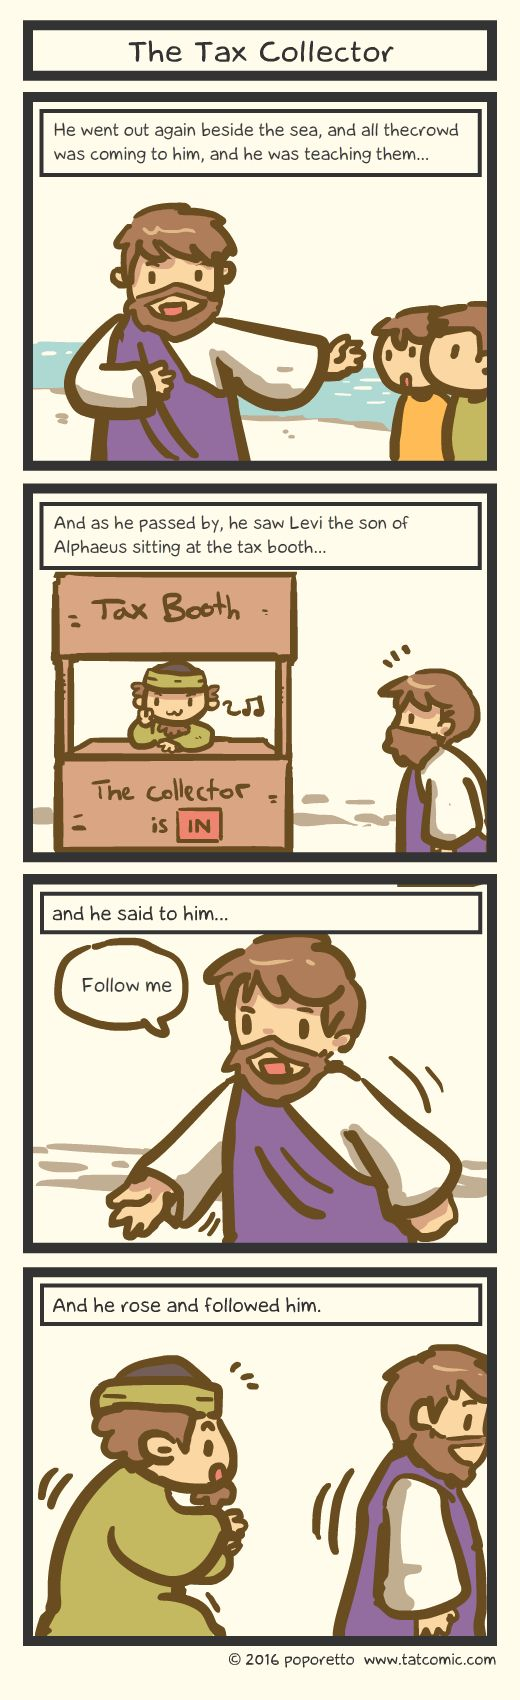 Book of Mark - The Tax Collector by Poporetto